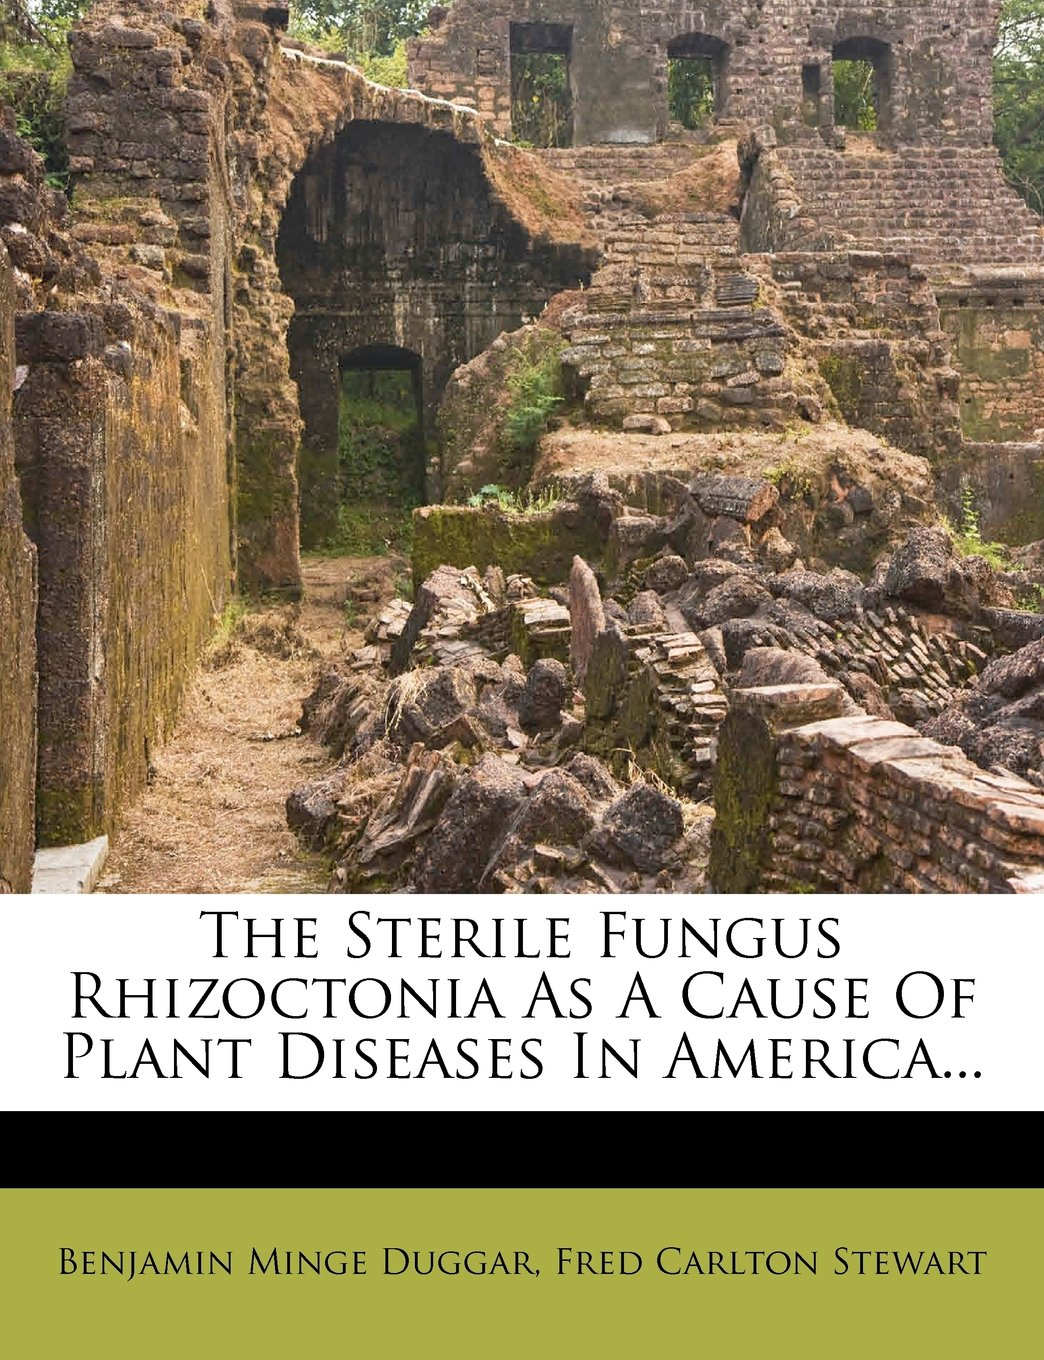 The Sterile Fungus Rhizoctonia As A Cause Of Plant Diseases In America... PDF